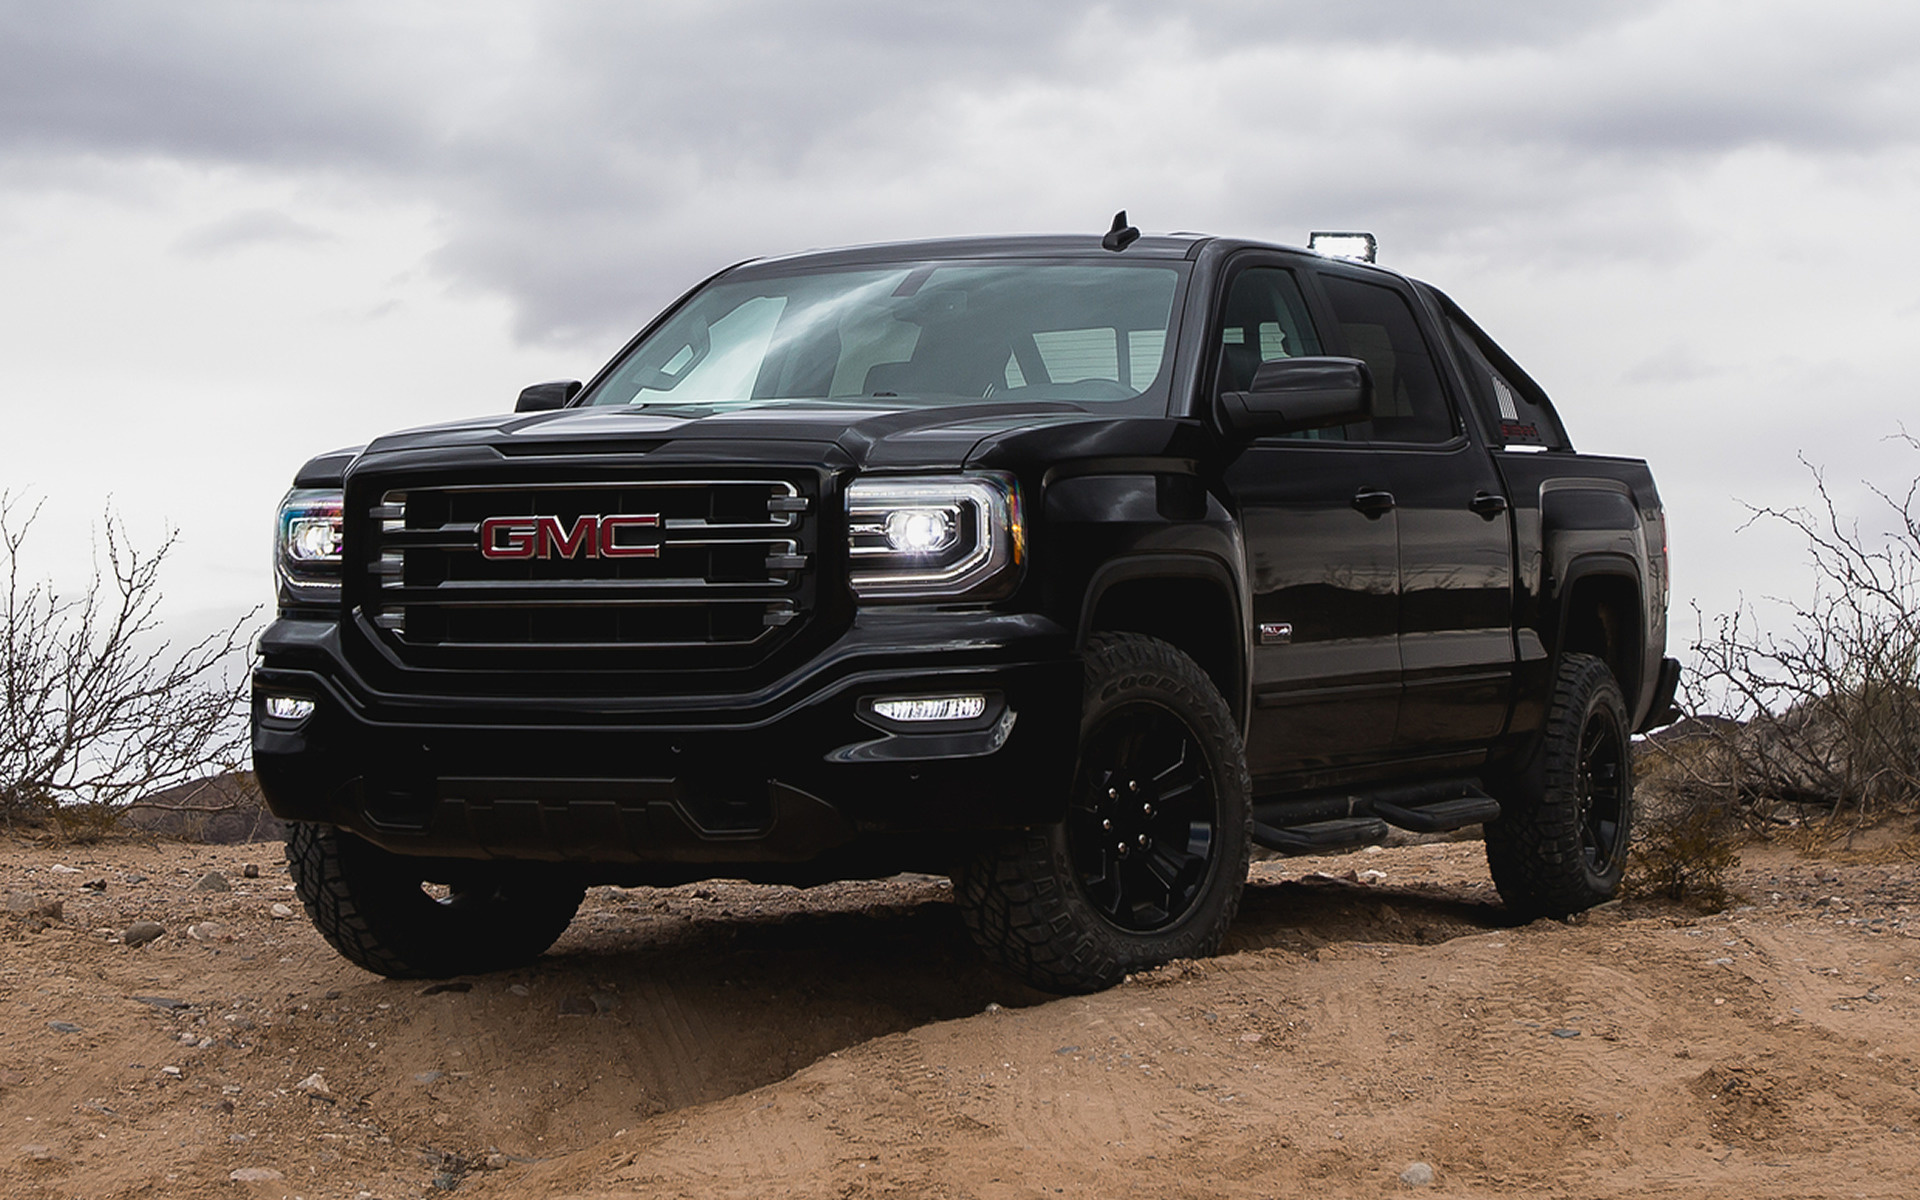 Gmc All Terrain X >> GMC Sierra 1500 All Terrain X Crew Cab (2016) Wallpapers and HD Images - Car Pixel